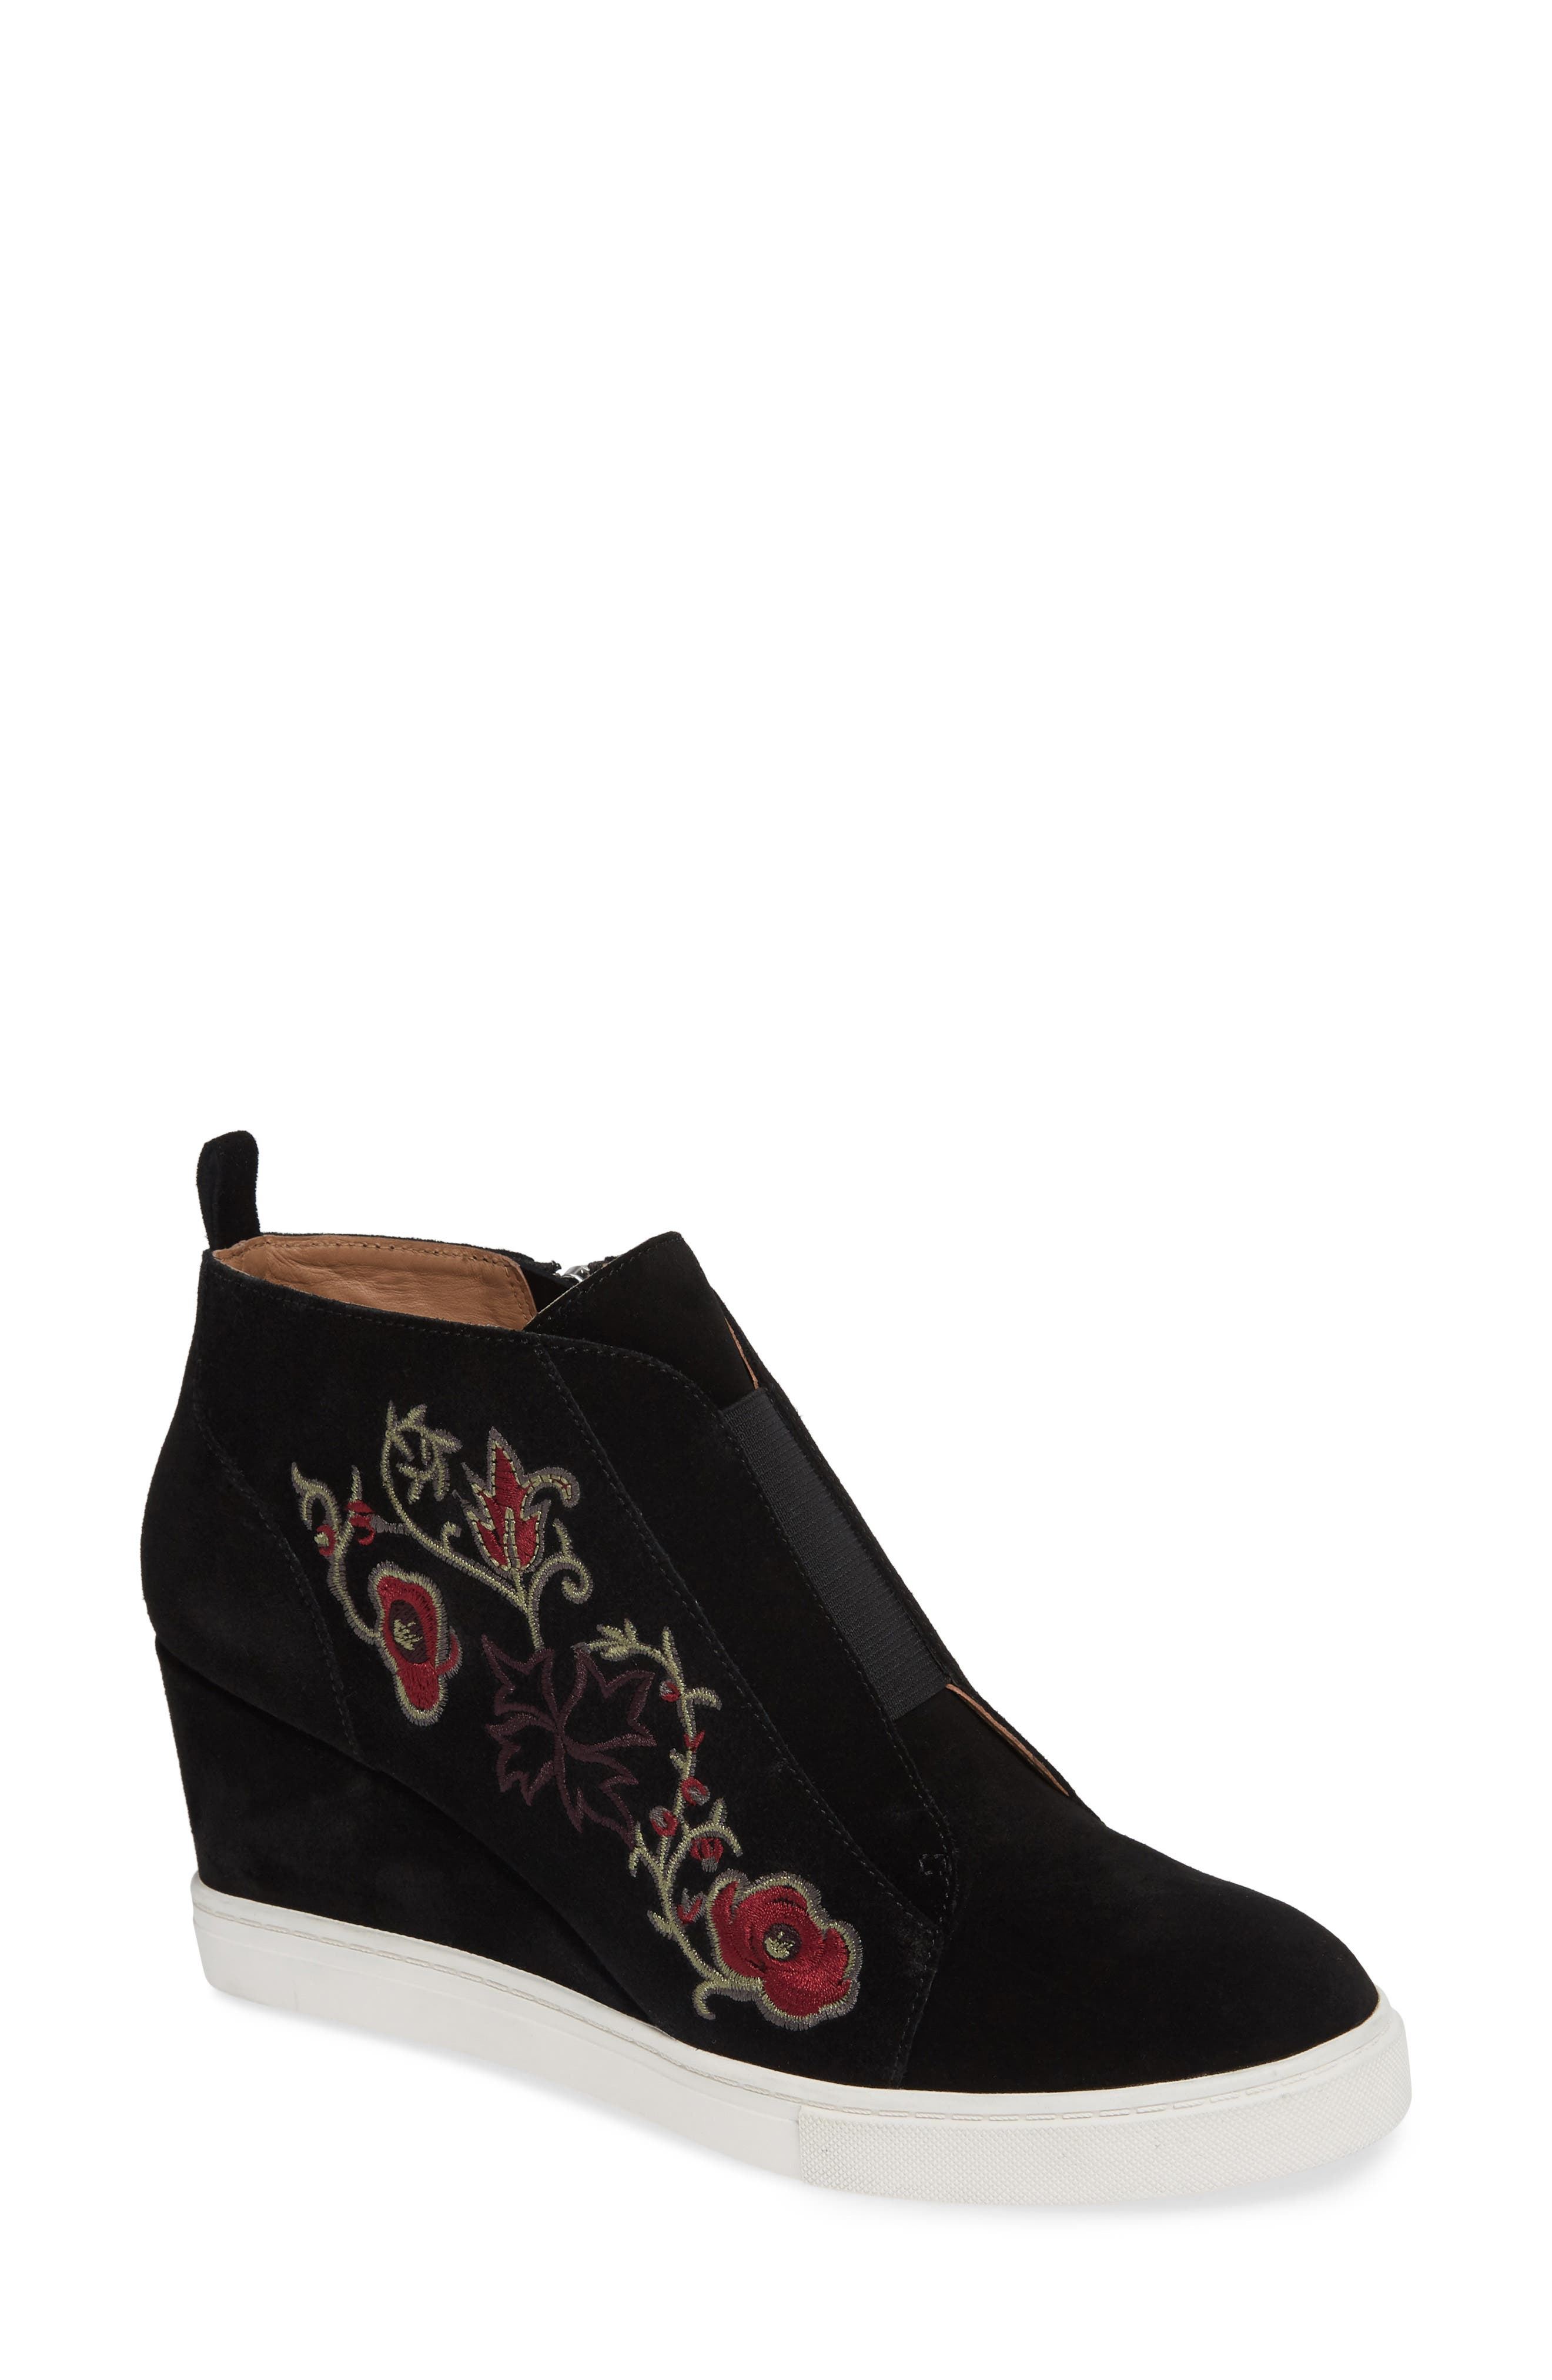 Felicia II Wedge Bootie,                             Main thumbnail 1, color,                             BLACK/ BLACK EMBROIDERY SUEDE